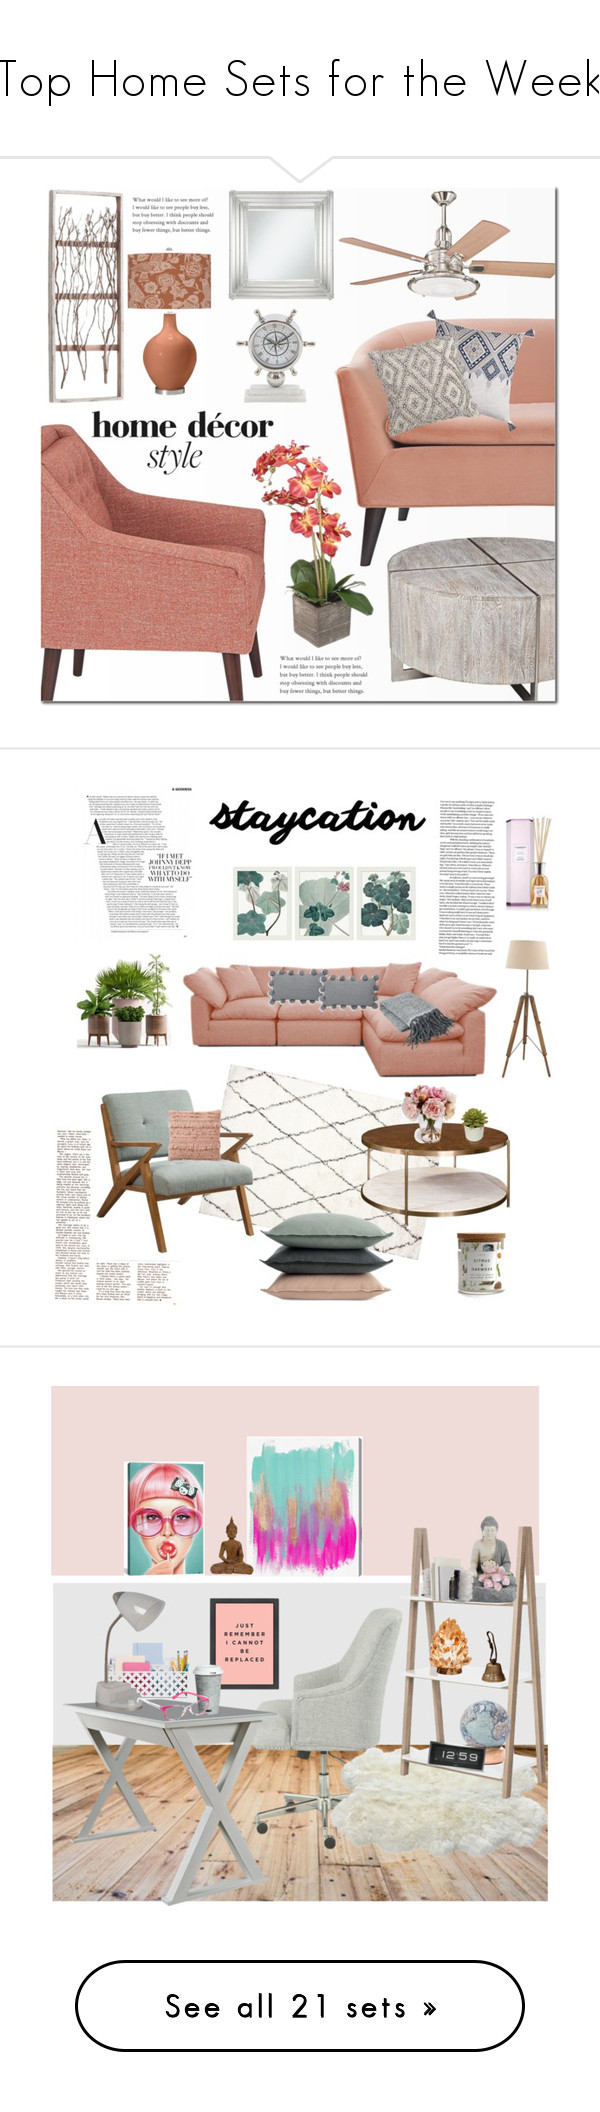 top home decor interior design.  Top Home Sets for the Week by polyvore liked on Polyvore featuring interior